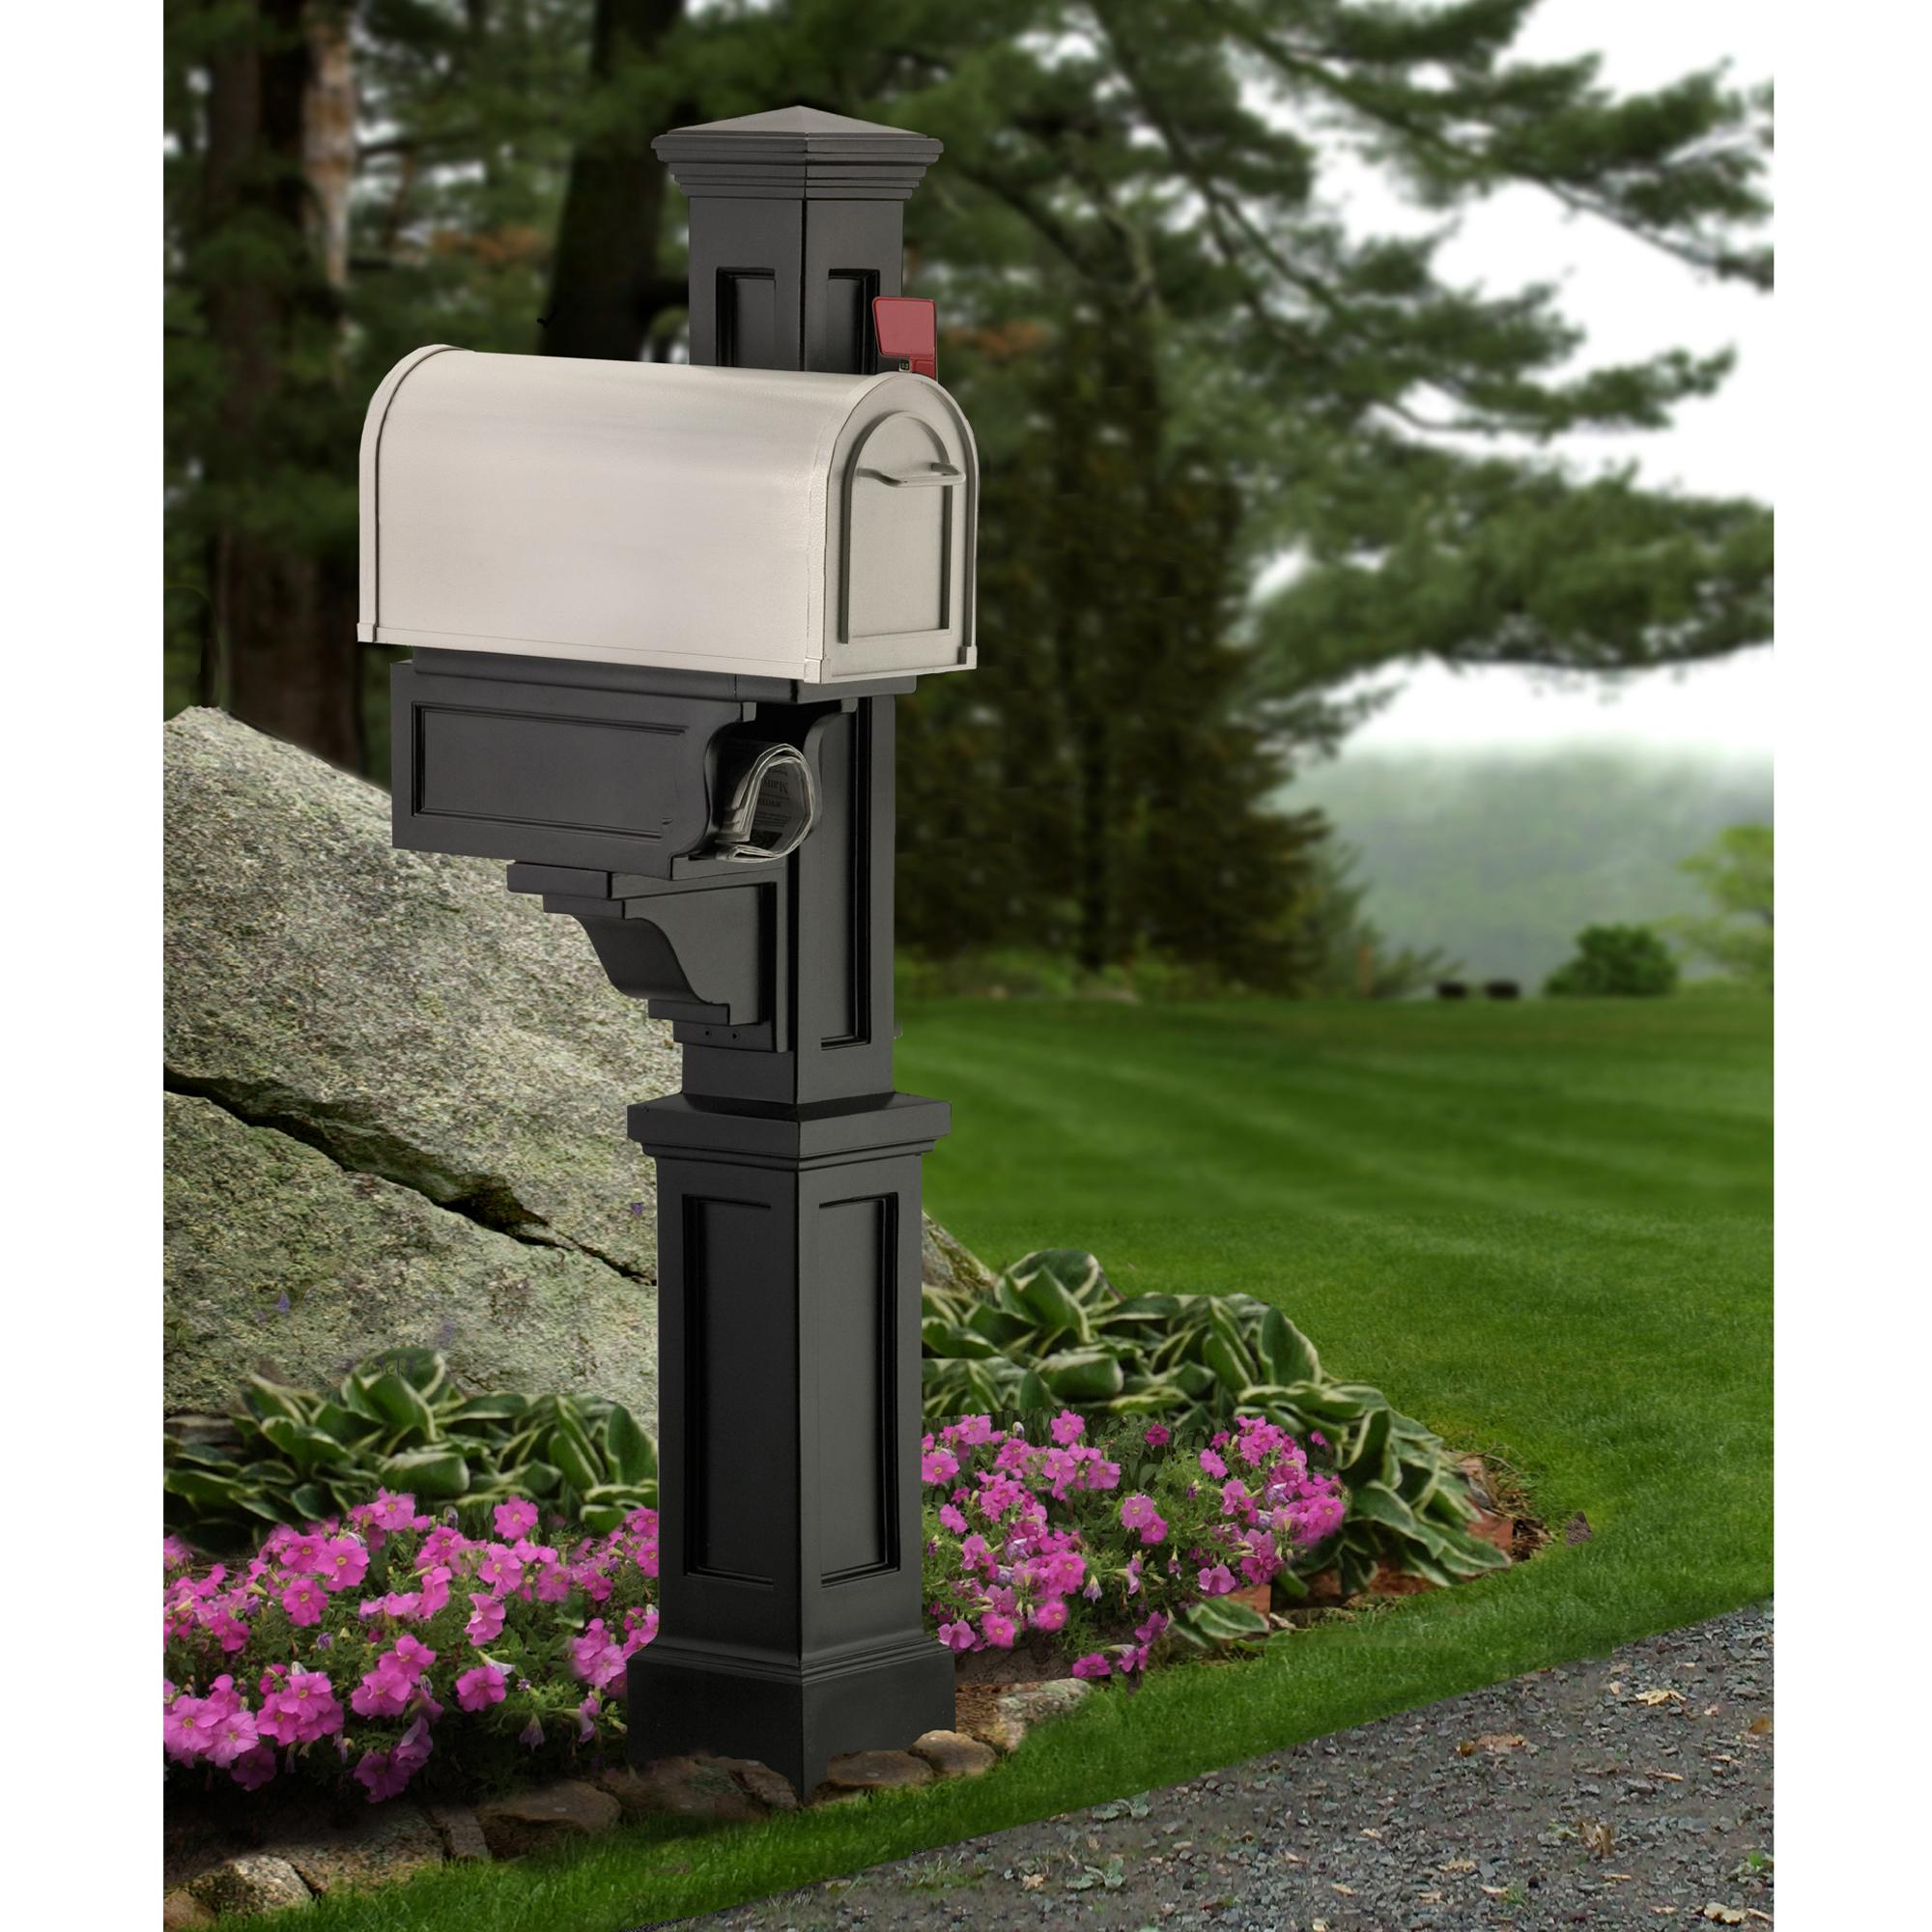 post locking flag mount rural pedestal ideas mailboxes wall decorative townhouse enthralling depot home vertical galvanized mounted personalized voguish mailbox gibraltar steel dw loc in wondrous